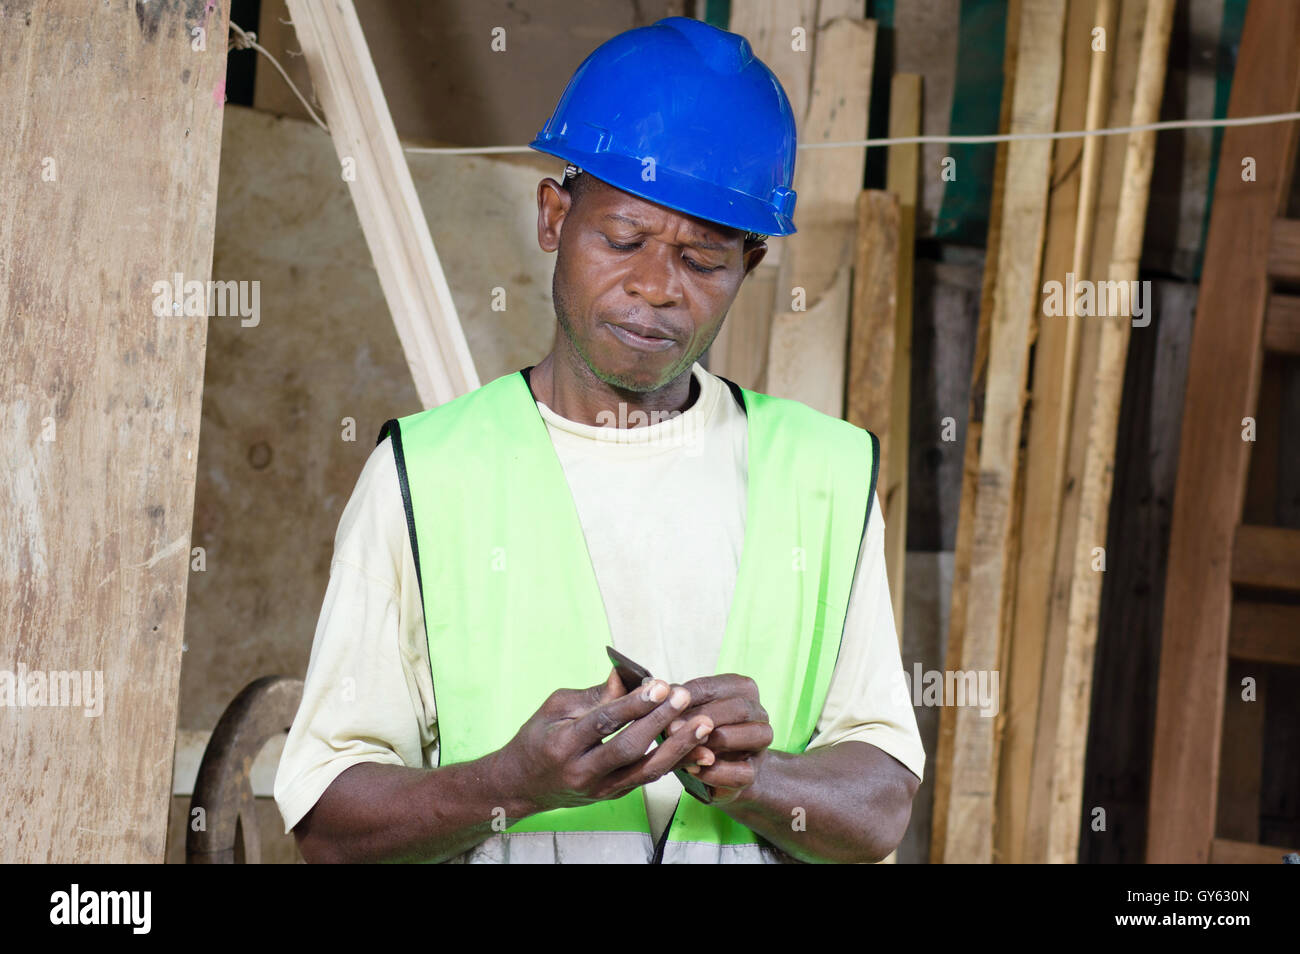 In the morning before starting work , the carpenter replace the blade of his plane. - Stock Image